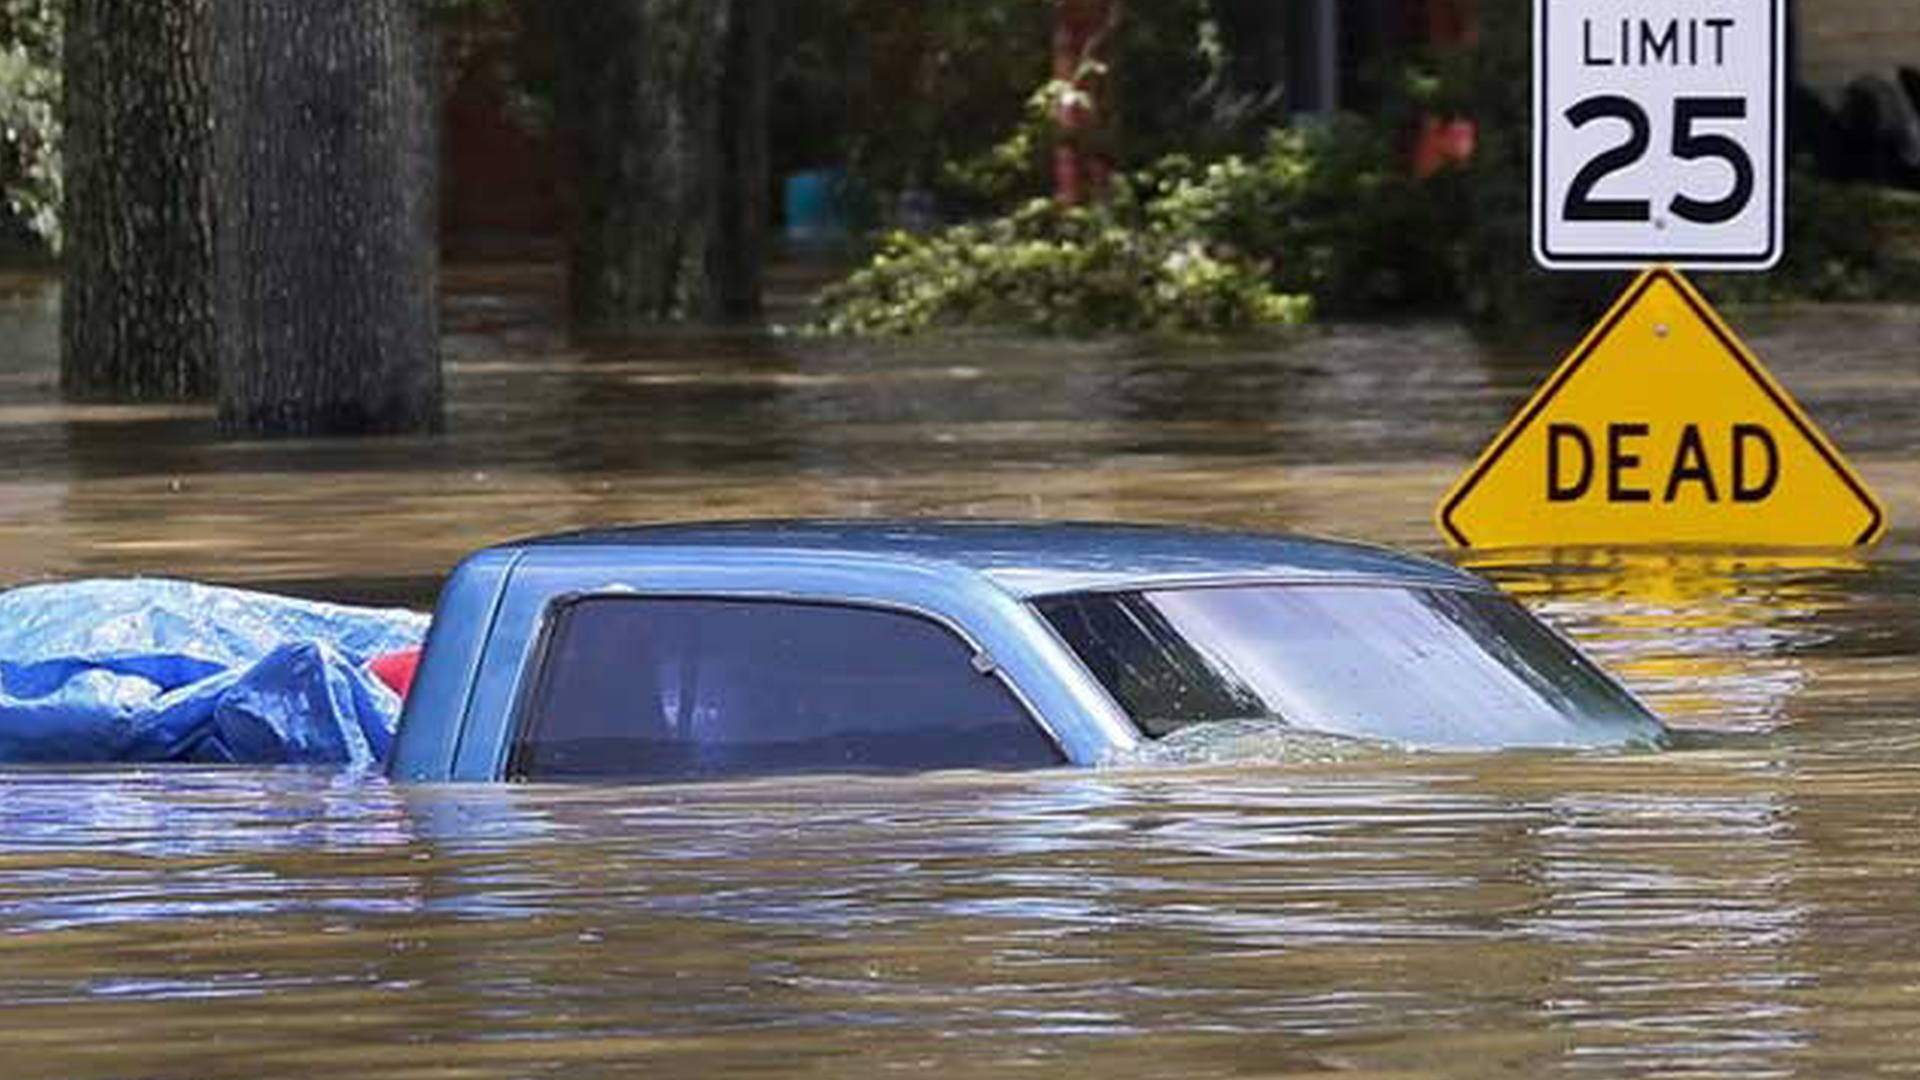 Climate Change Update: Scientists Link Climate Change To Deadly Louisiana